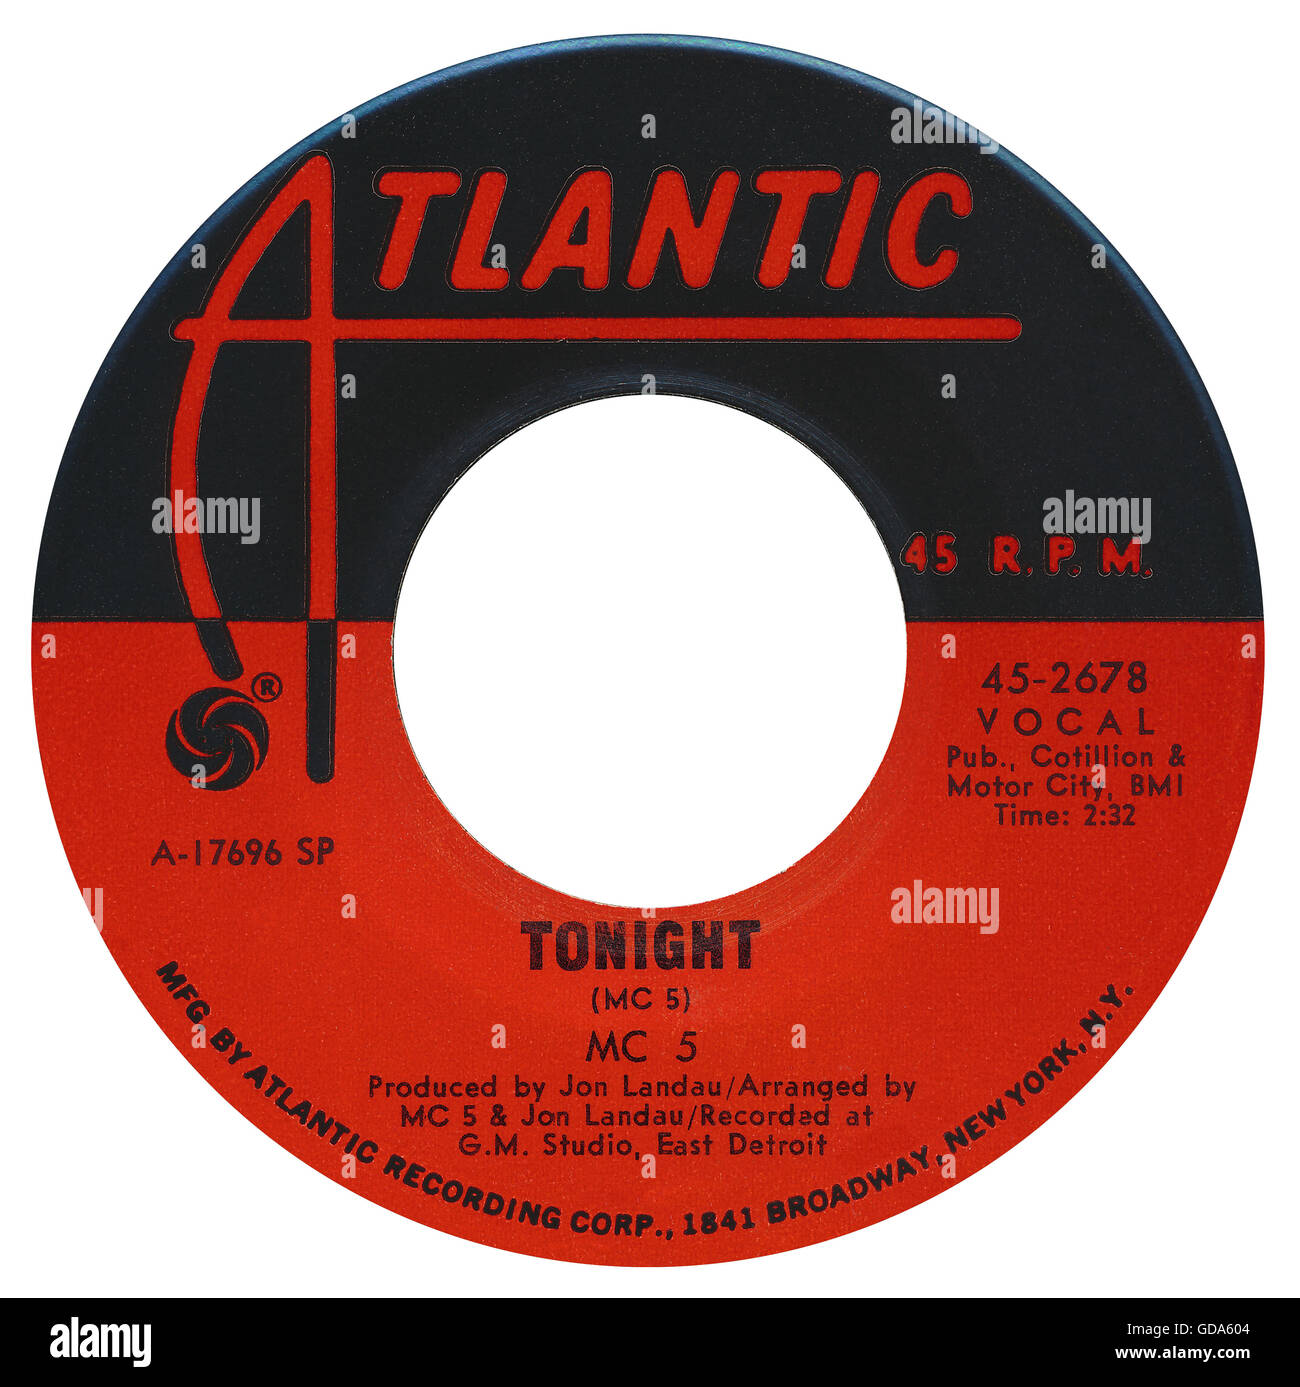 45 RPM 7' US record label of Tonight by The MC5 on the Atlantic label from 1969. - Stock Image